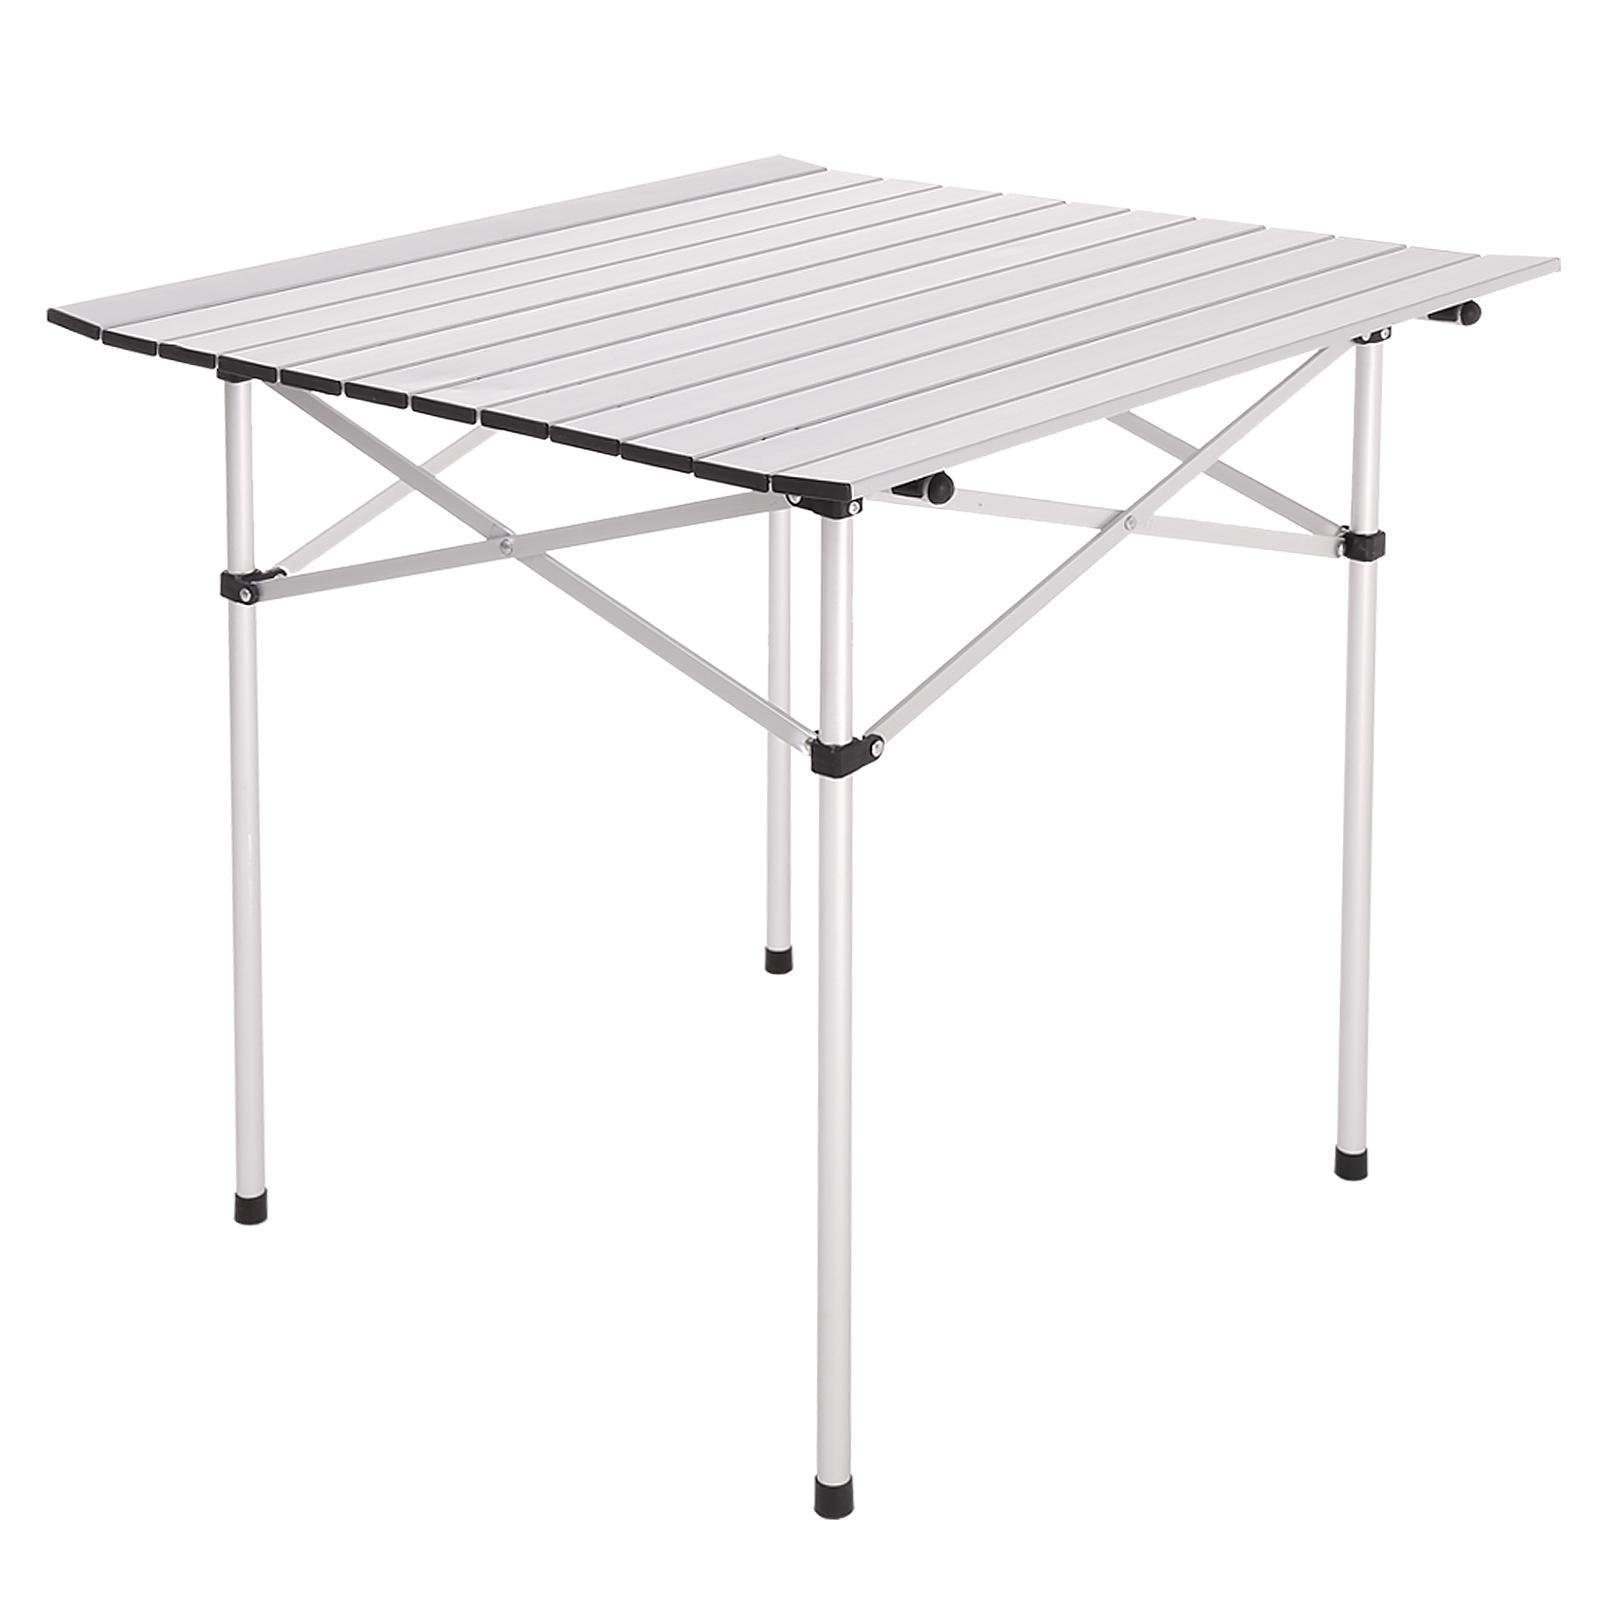 TRIWONDER Ultralight Folding Camping Aluminum Table Portable Collapsible Roll-Up Table for Outdoor Camping Picnic BBQ Beach Fishing